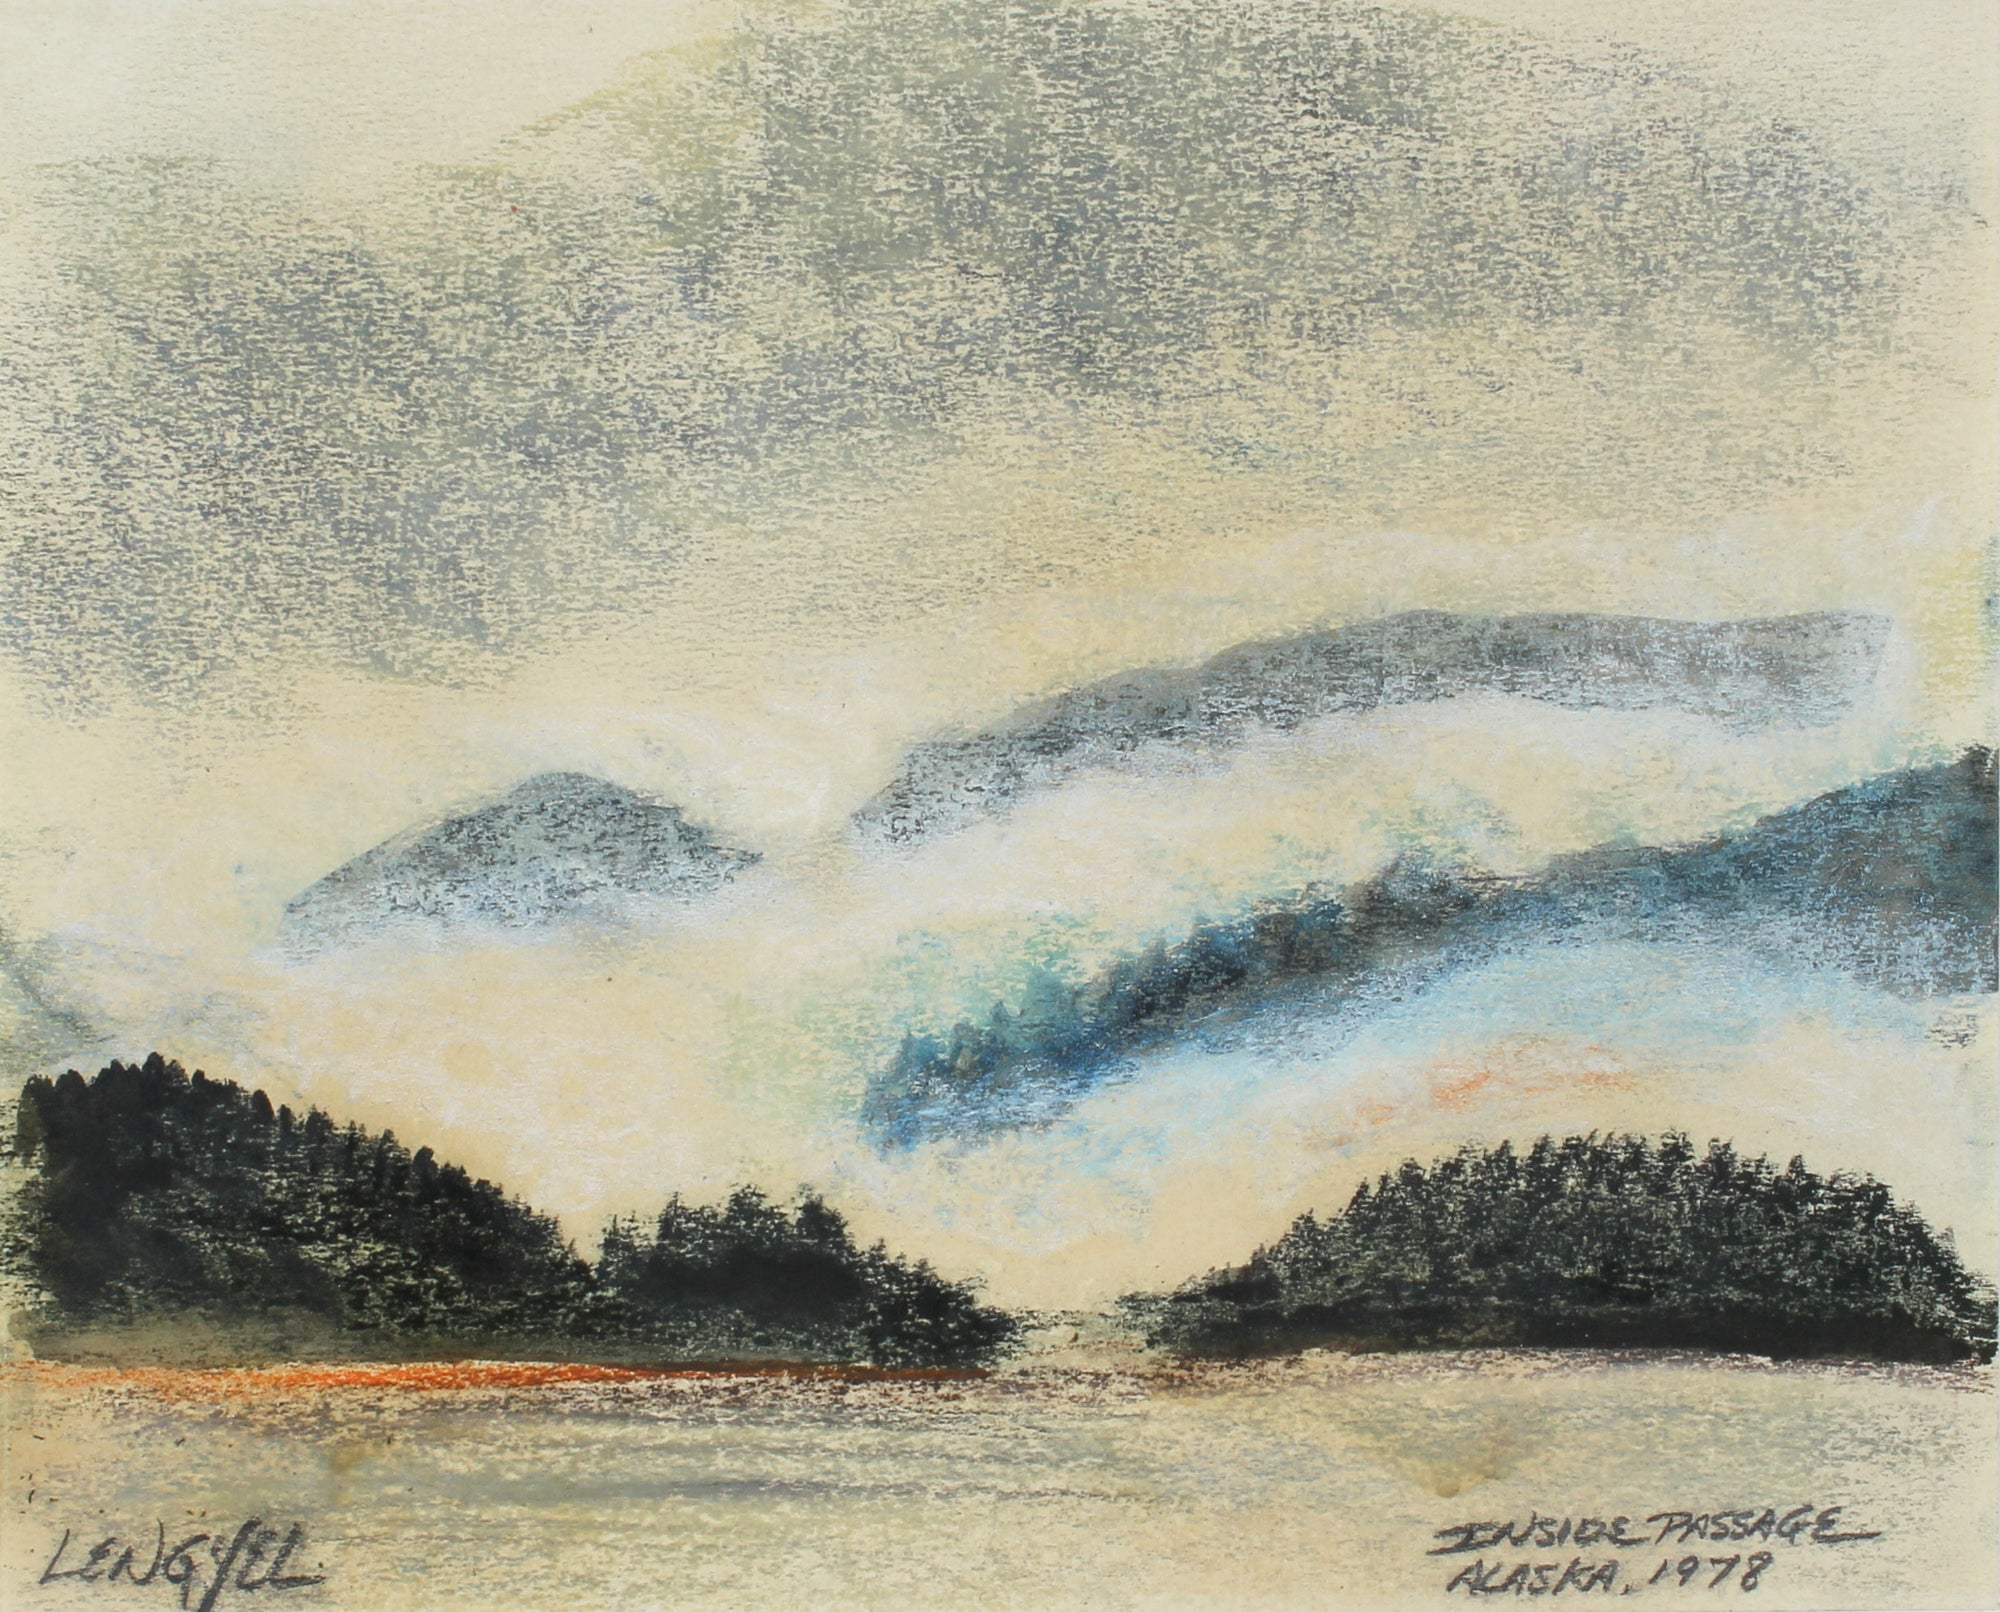 <i>Inside Passage, Alaska</i> <br>1978 Oil Pastel <br><br>#57208